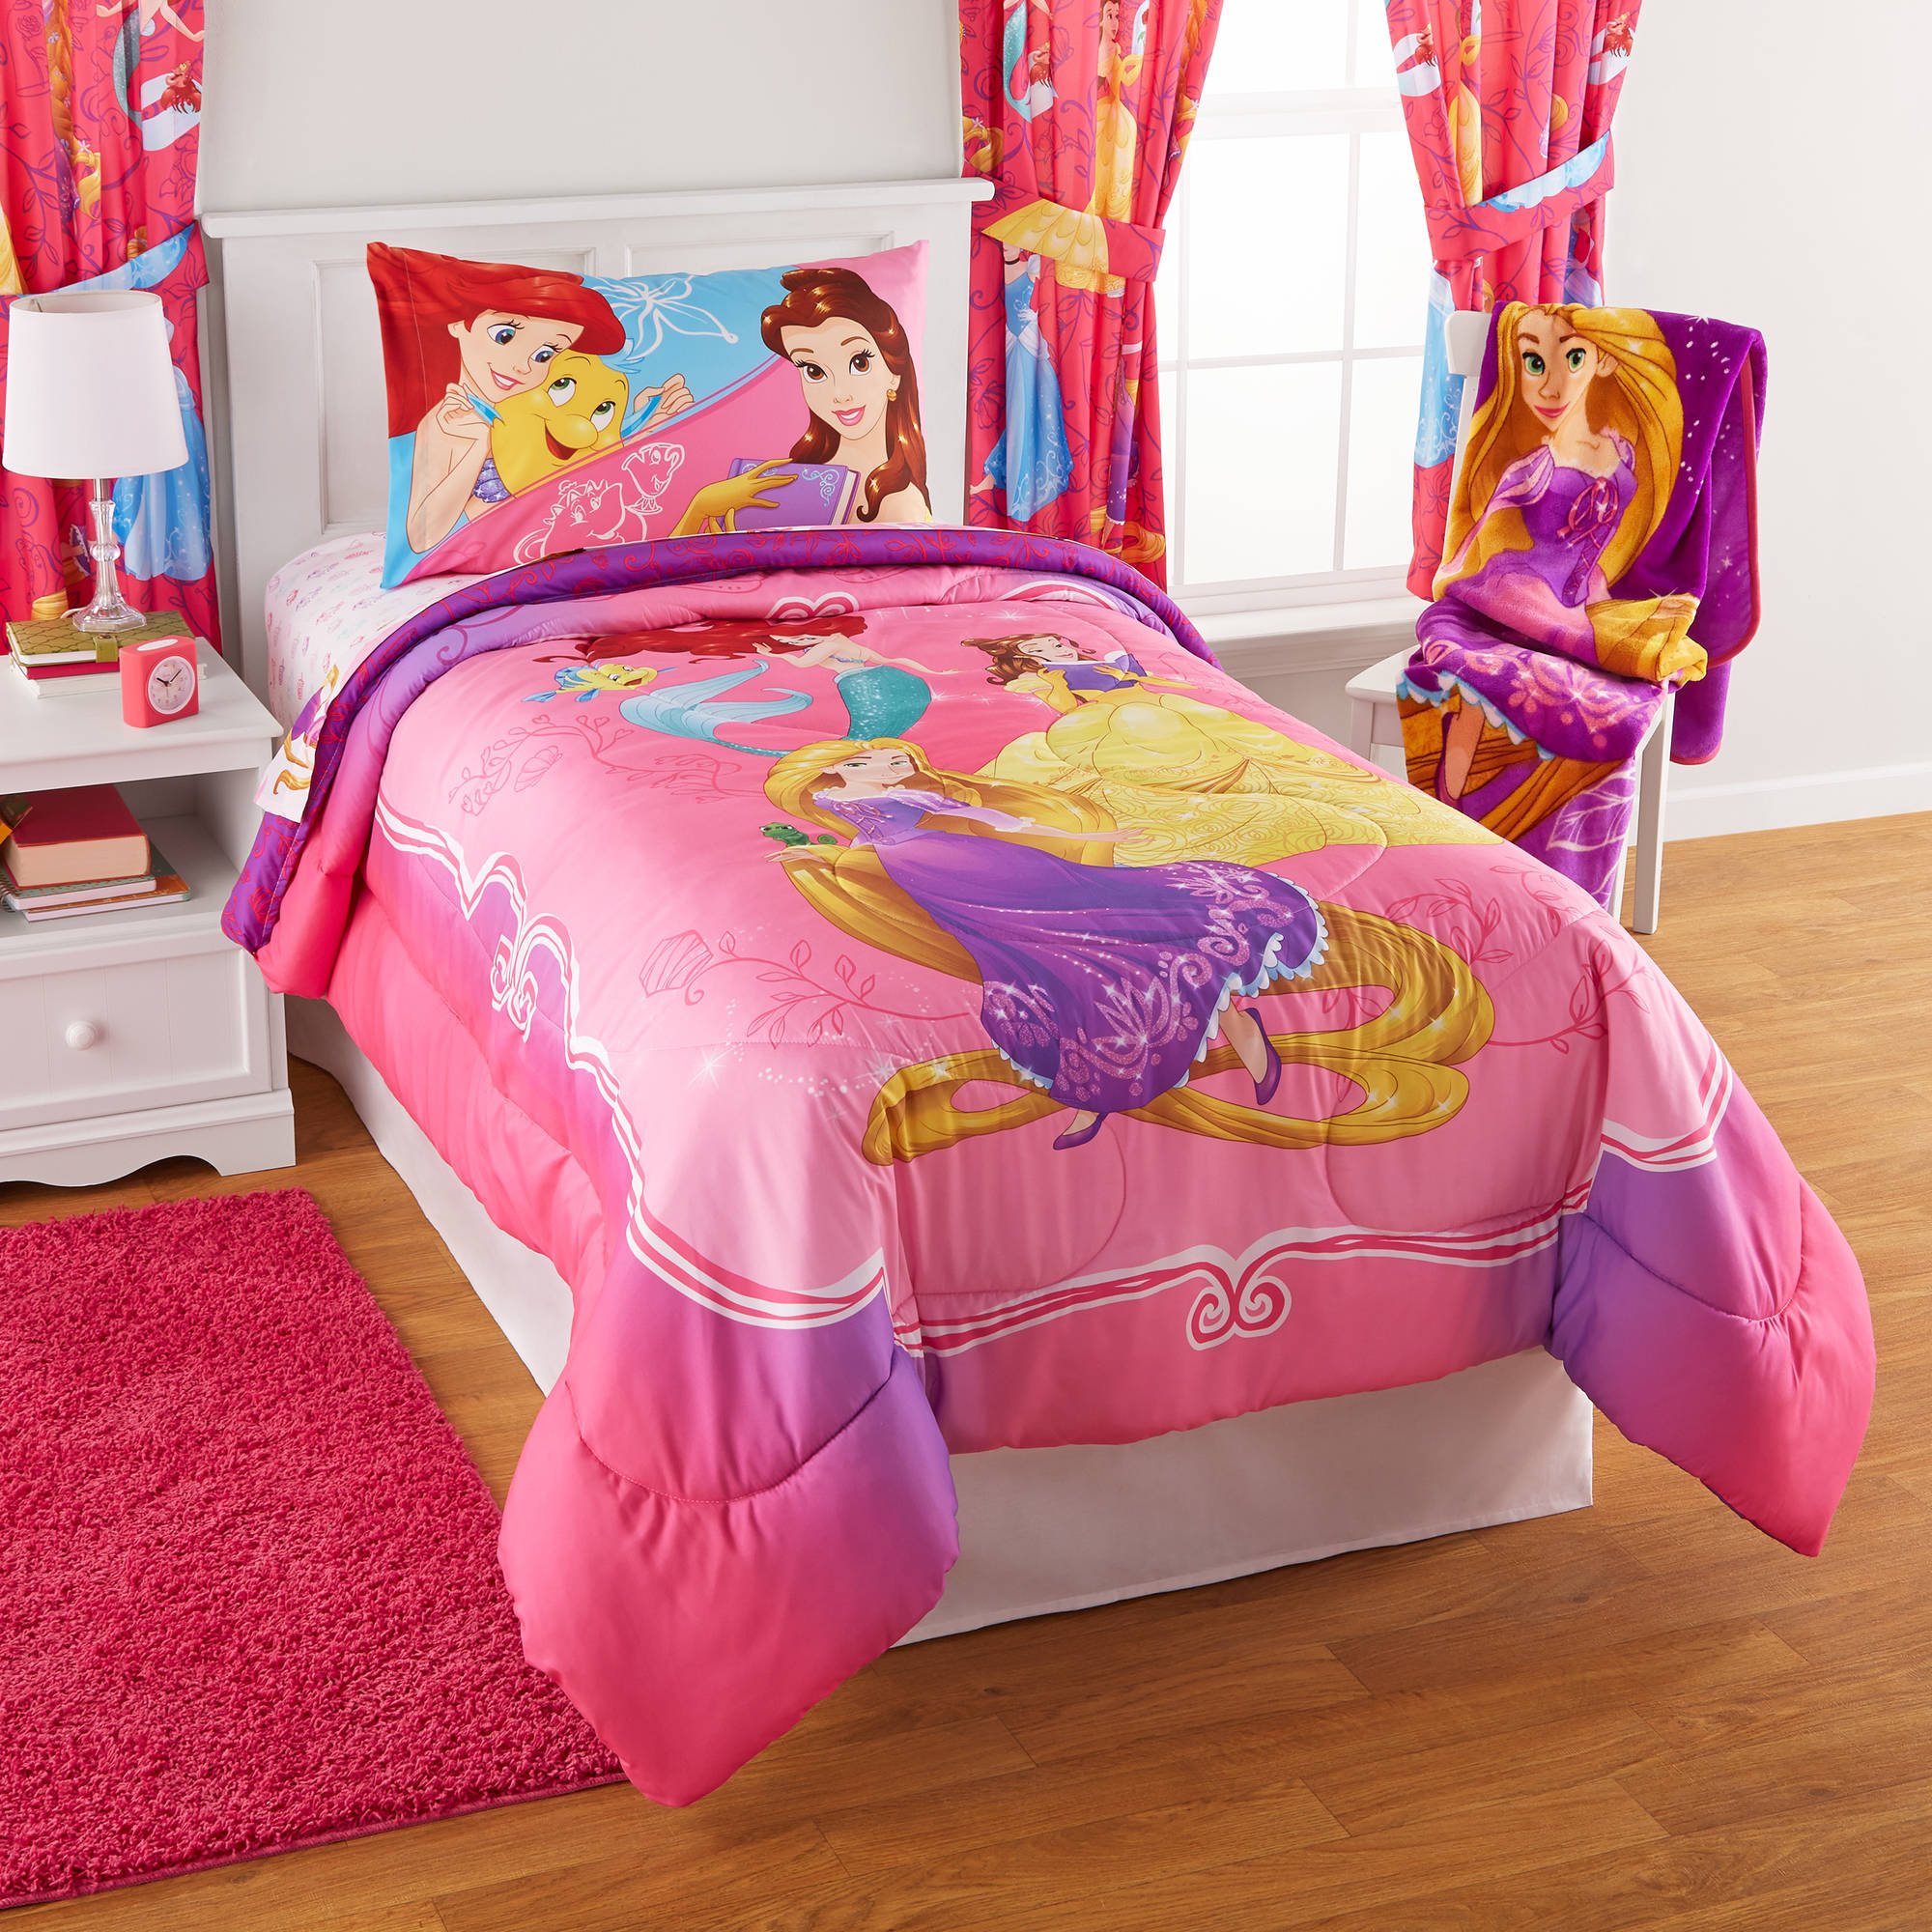 Disney Princess Bedazzling Princess Reversible Twin Full Bedding